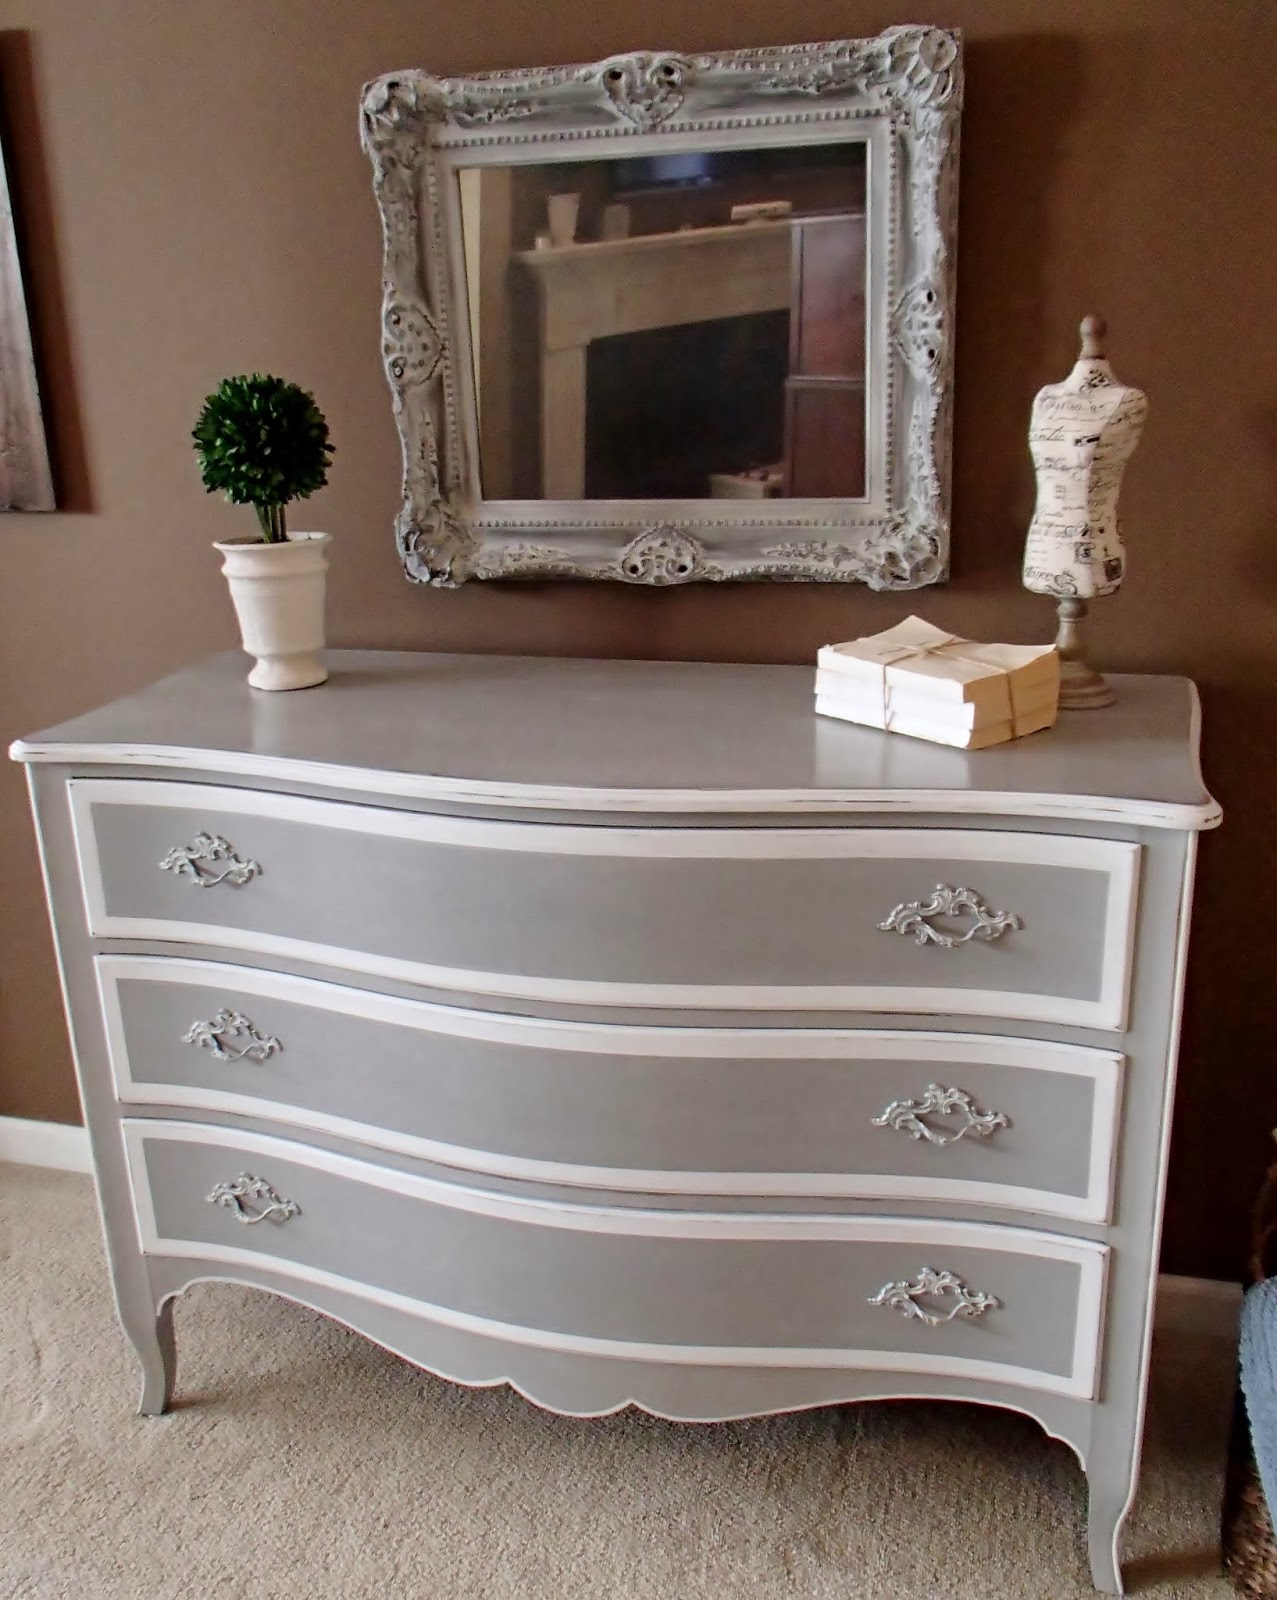 How Do I Wax Painted Furniture